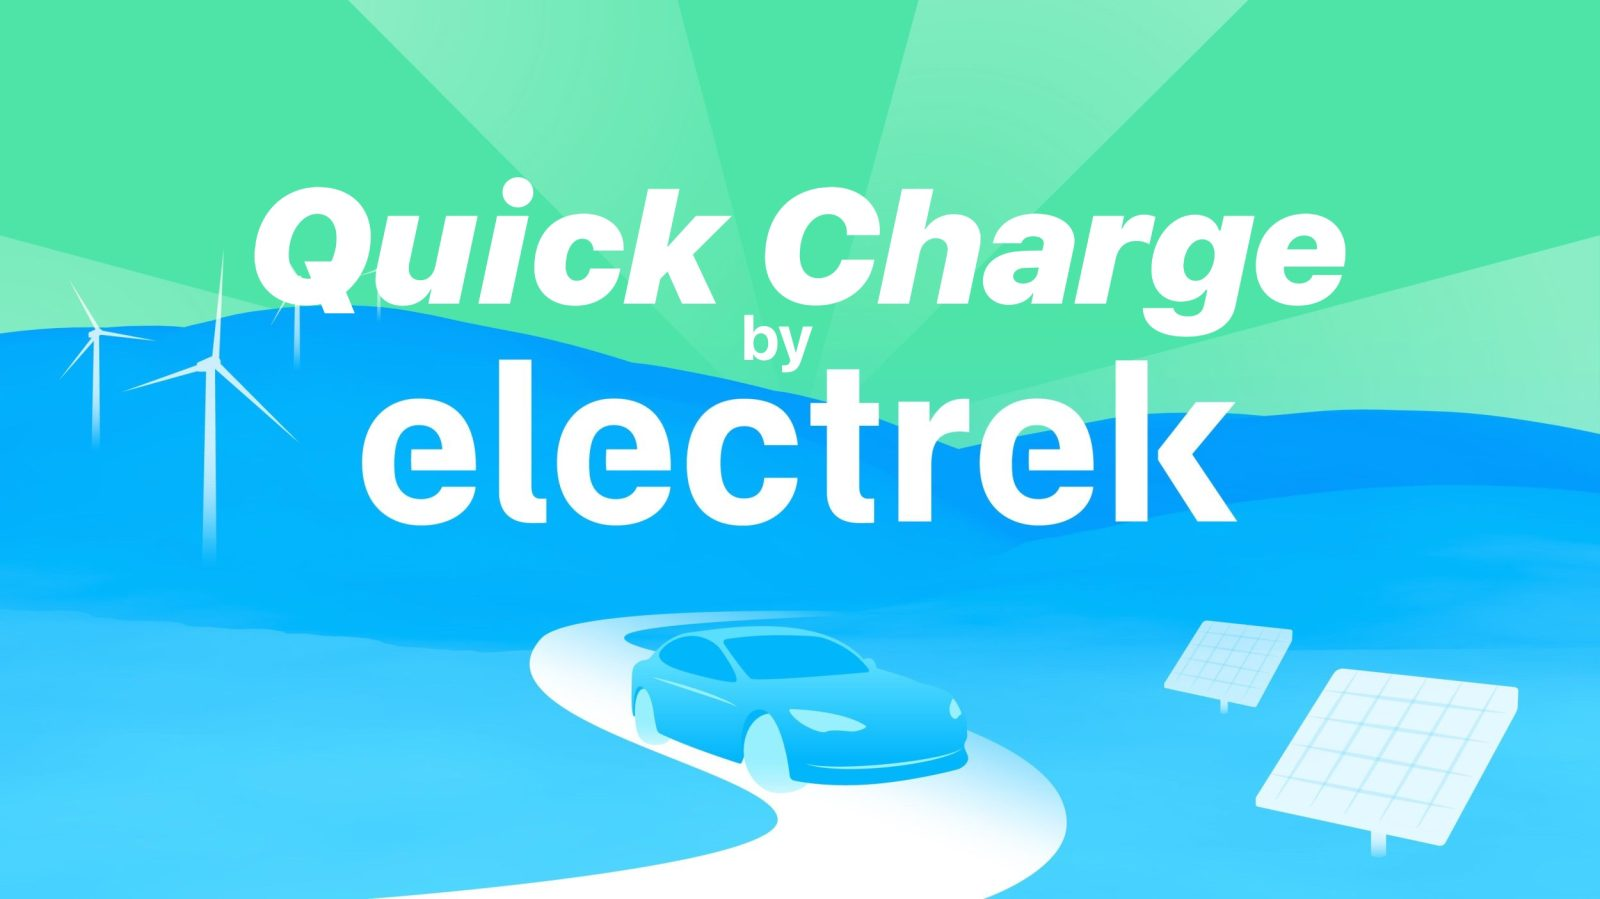 Quick Charge Podcast: January 15, 2020